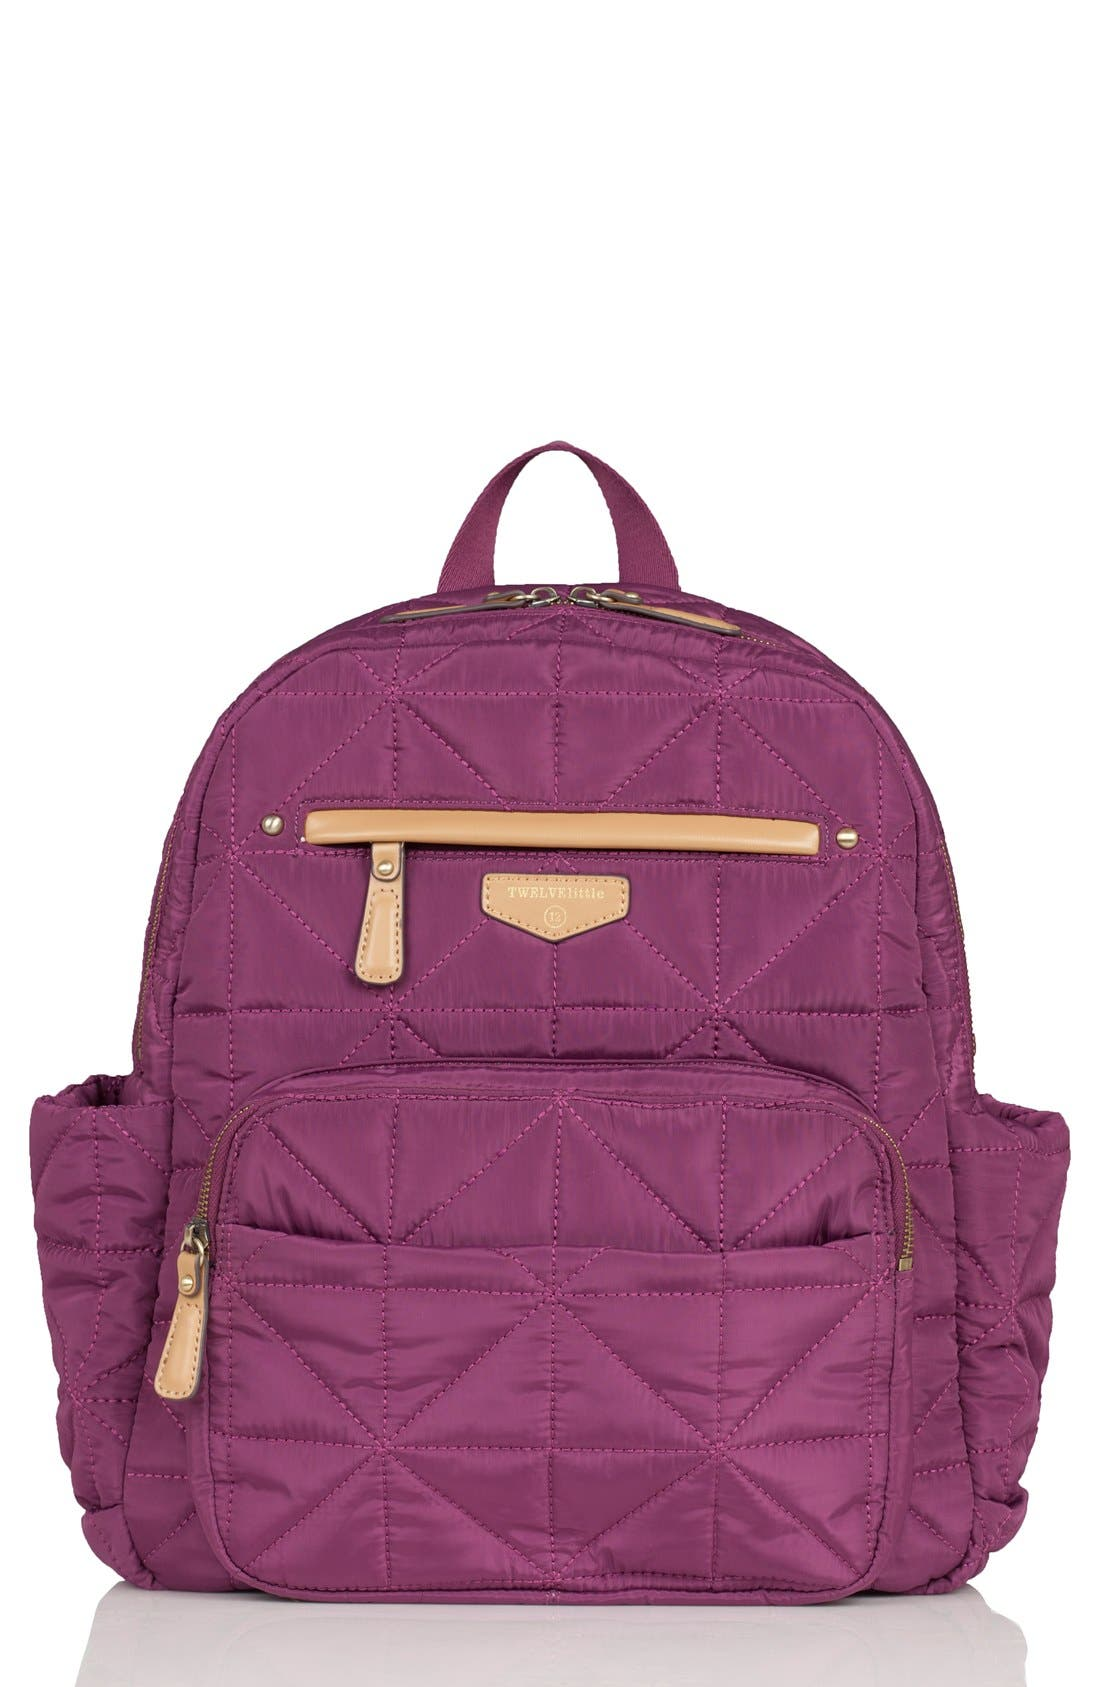 Quilted Water Resistant Nylon Diaper Backpack,                             Main thumbnail 1, color,                             Plum